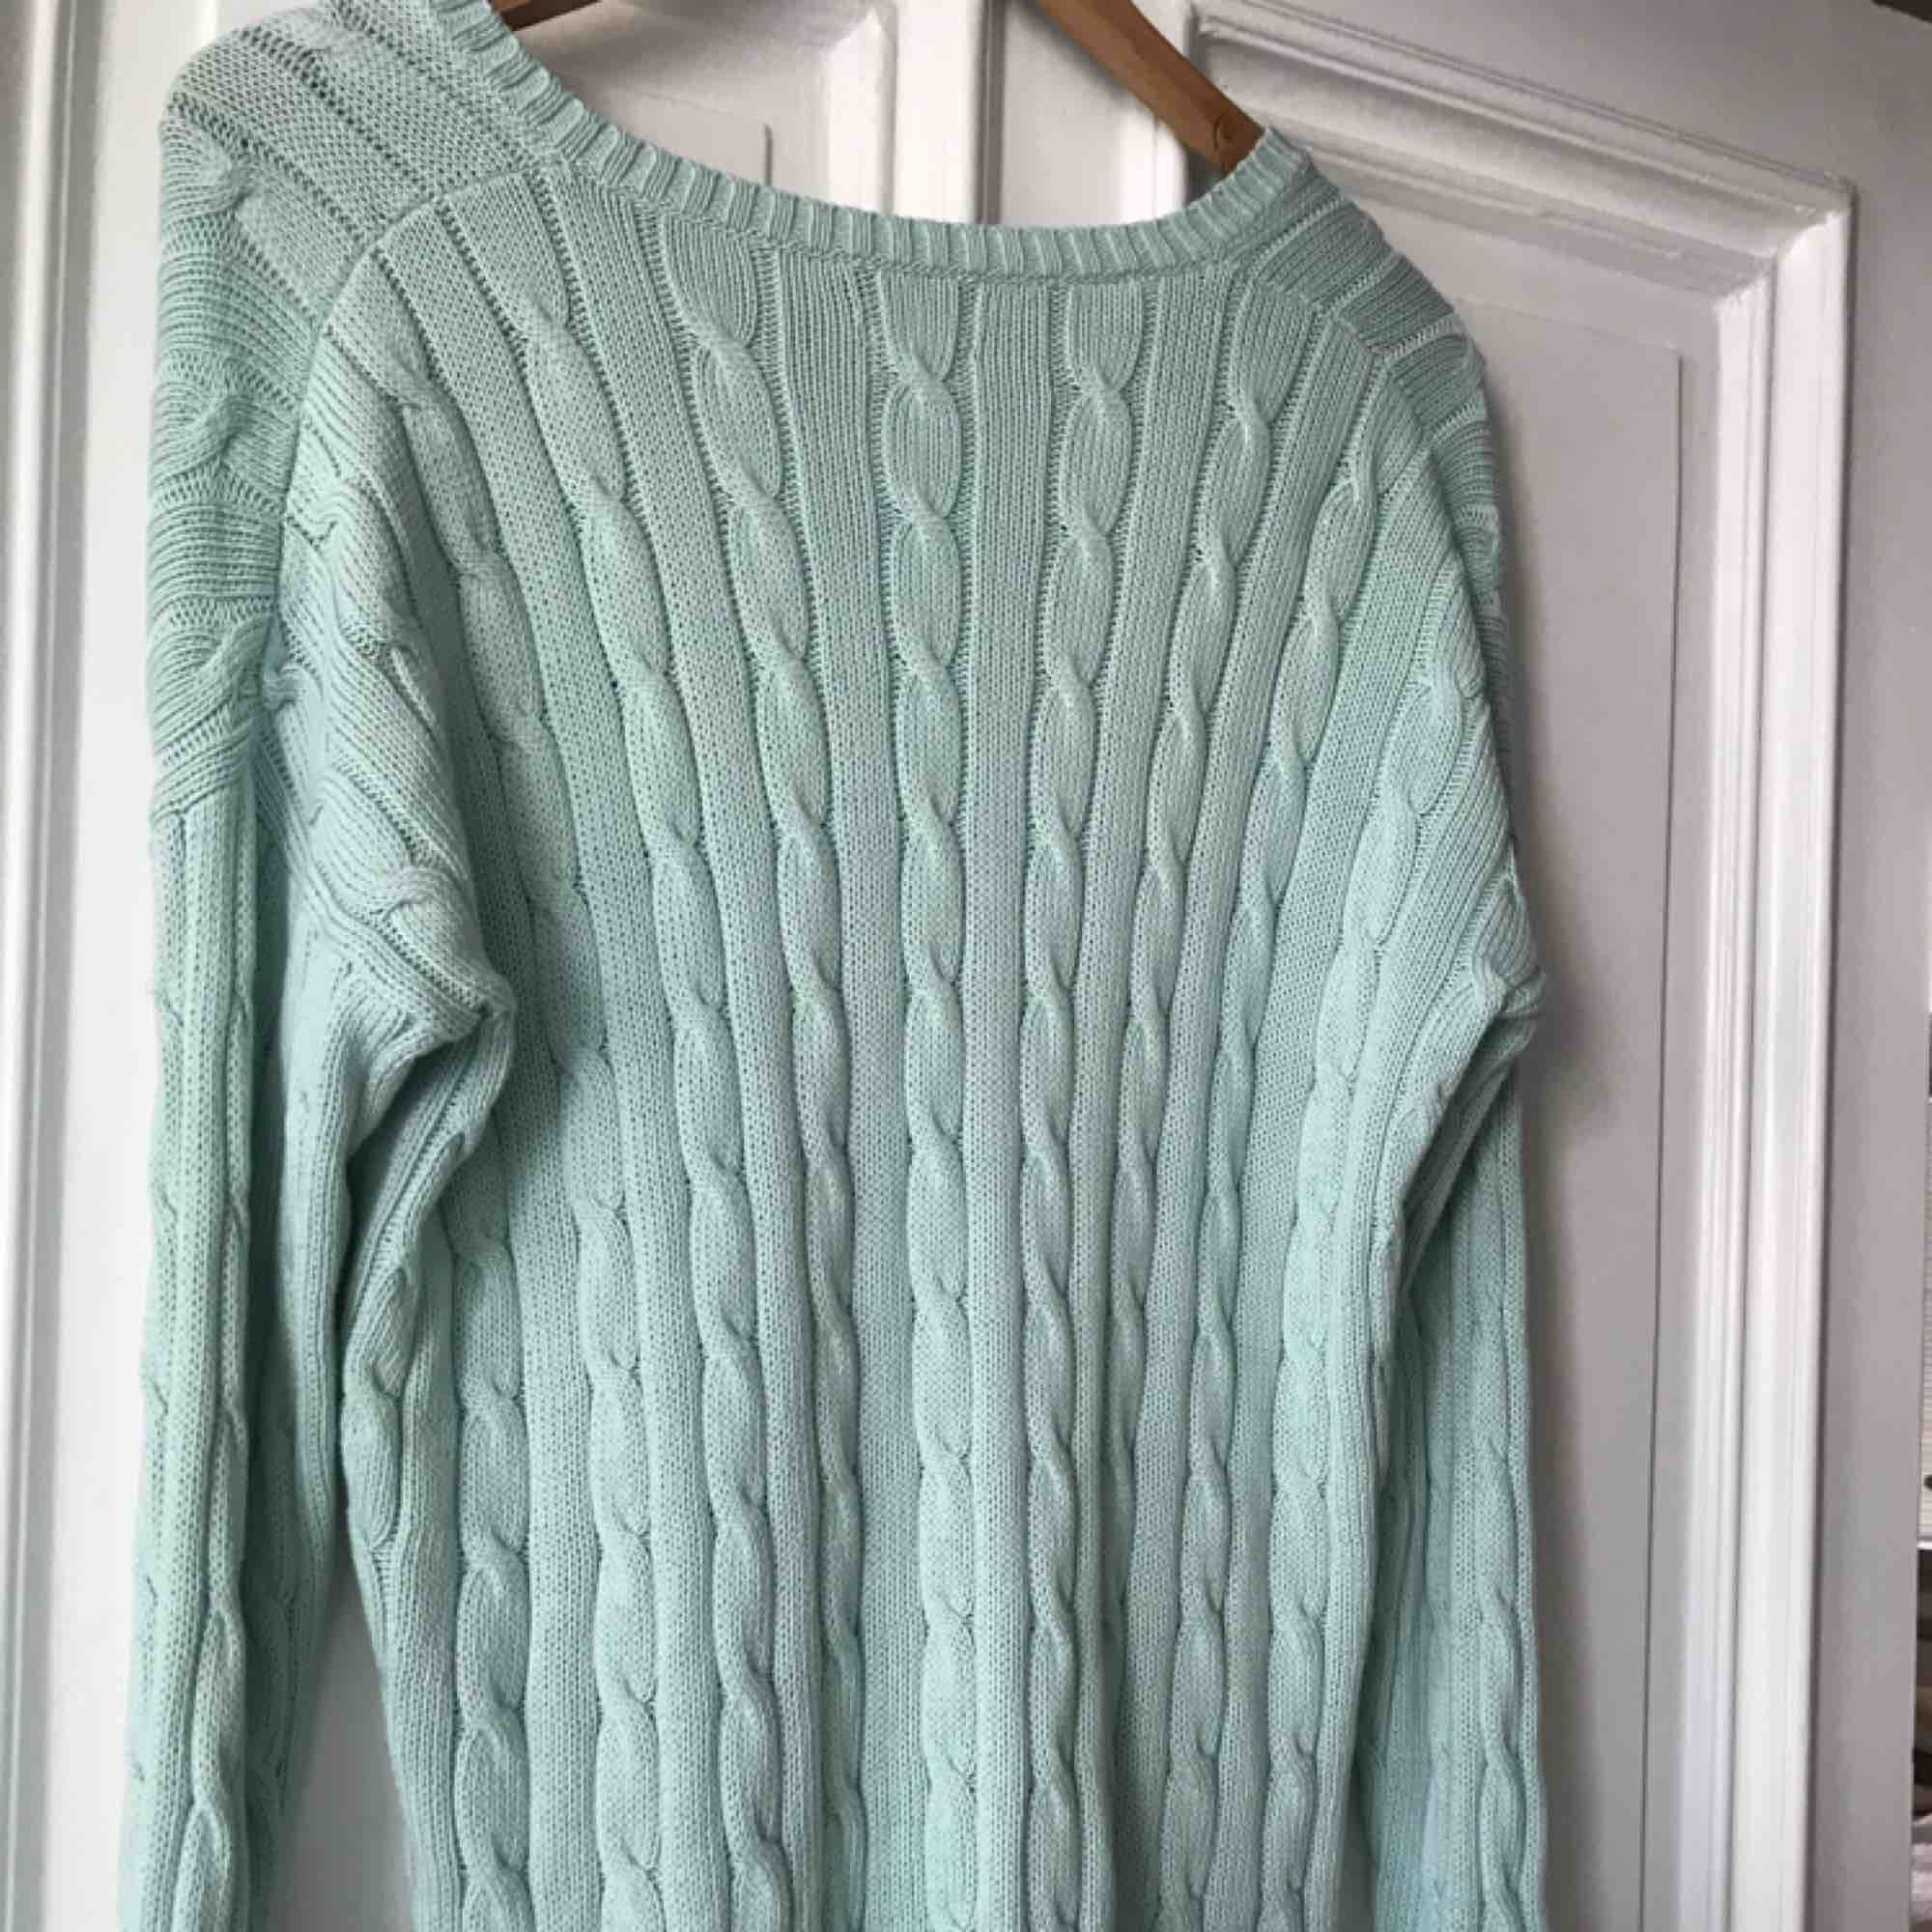 Lovely mint green Ralph Lauren cable knit sweater. Rarely used, a bit too big for me. Fits well for S-M sized.. Tröjor & Koftor.